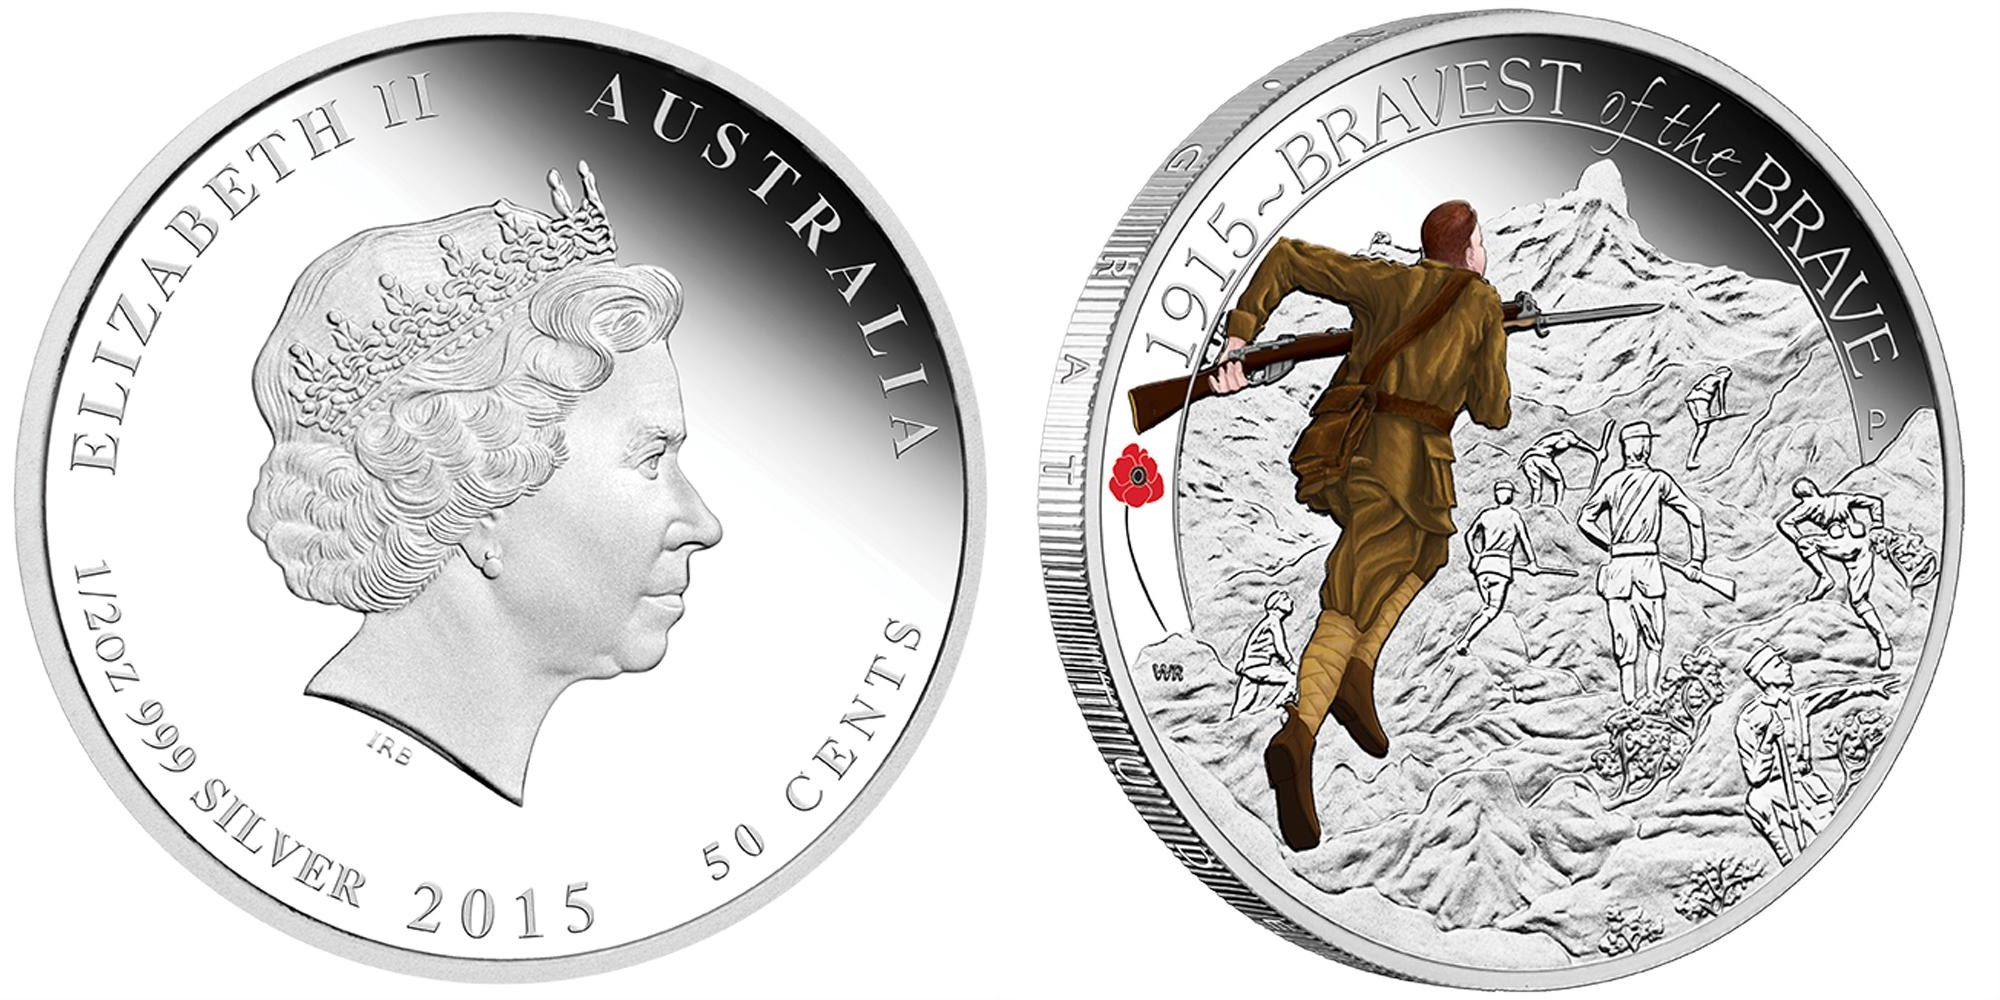 australie 2015 anzac spirit bravest of the brave.jpg